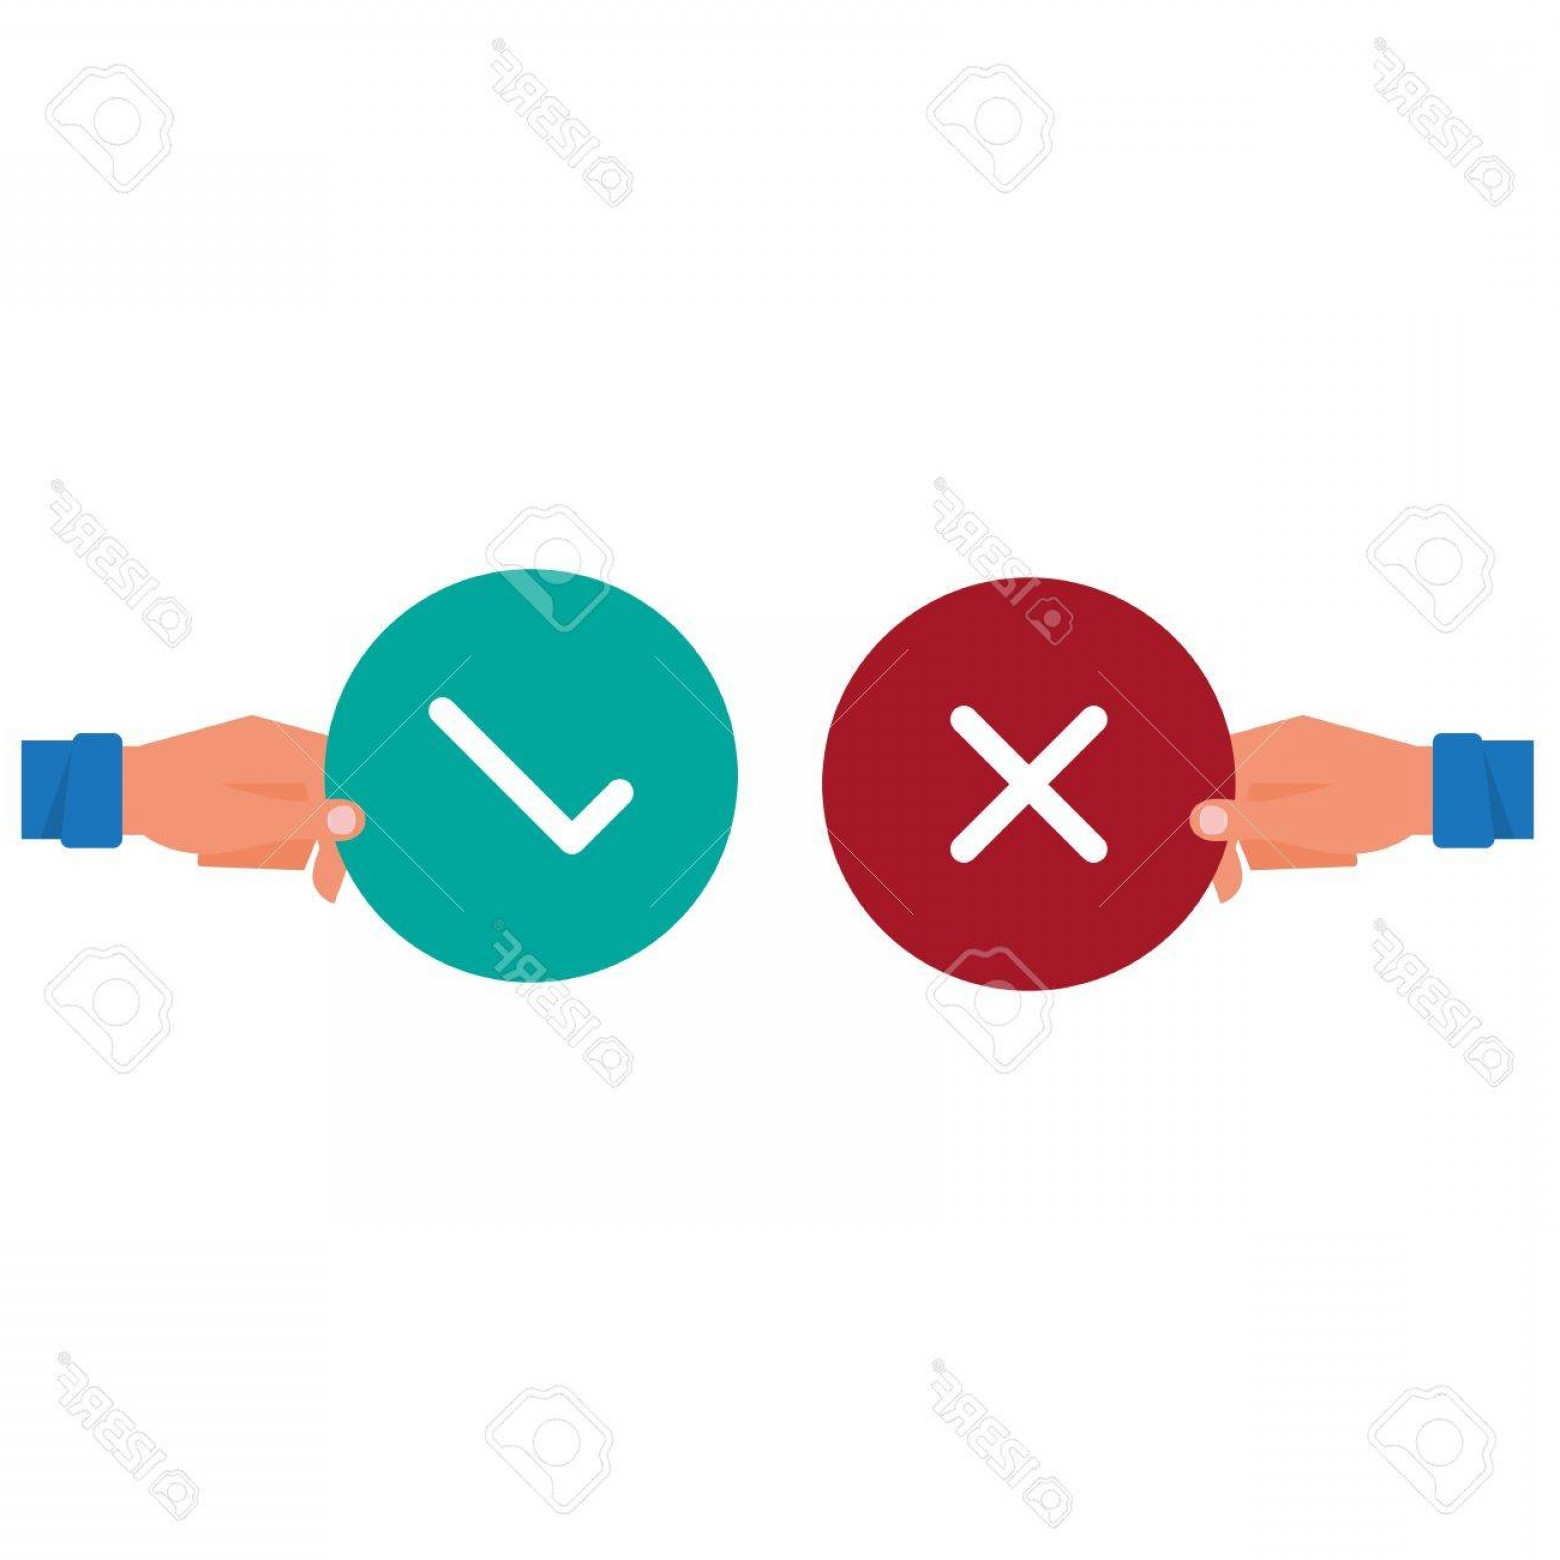 False Vector Style: Photostock Vector Hand Holding True And False Sign Positive And Negative Feedback Concept Yes Or No Icons Flat Design